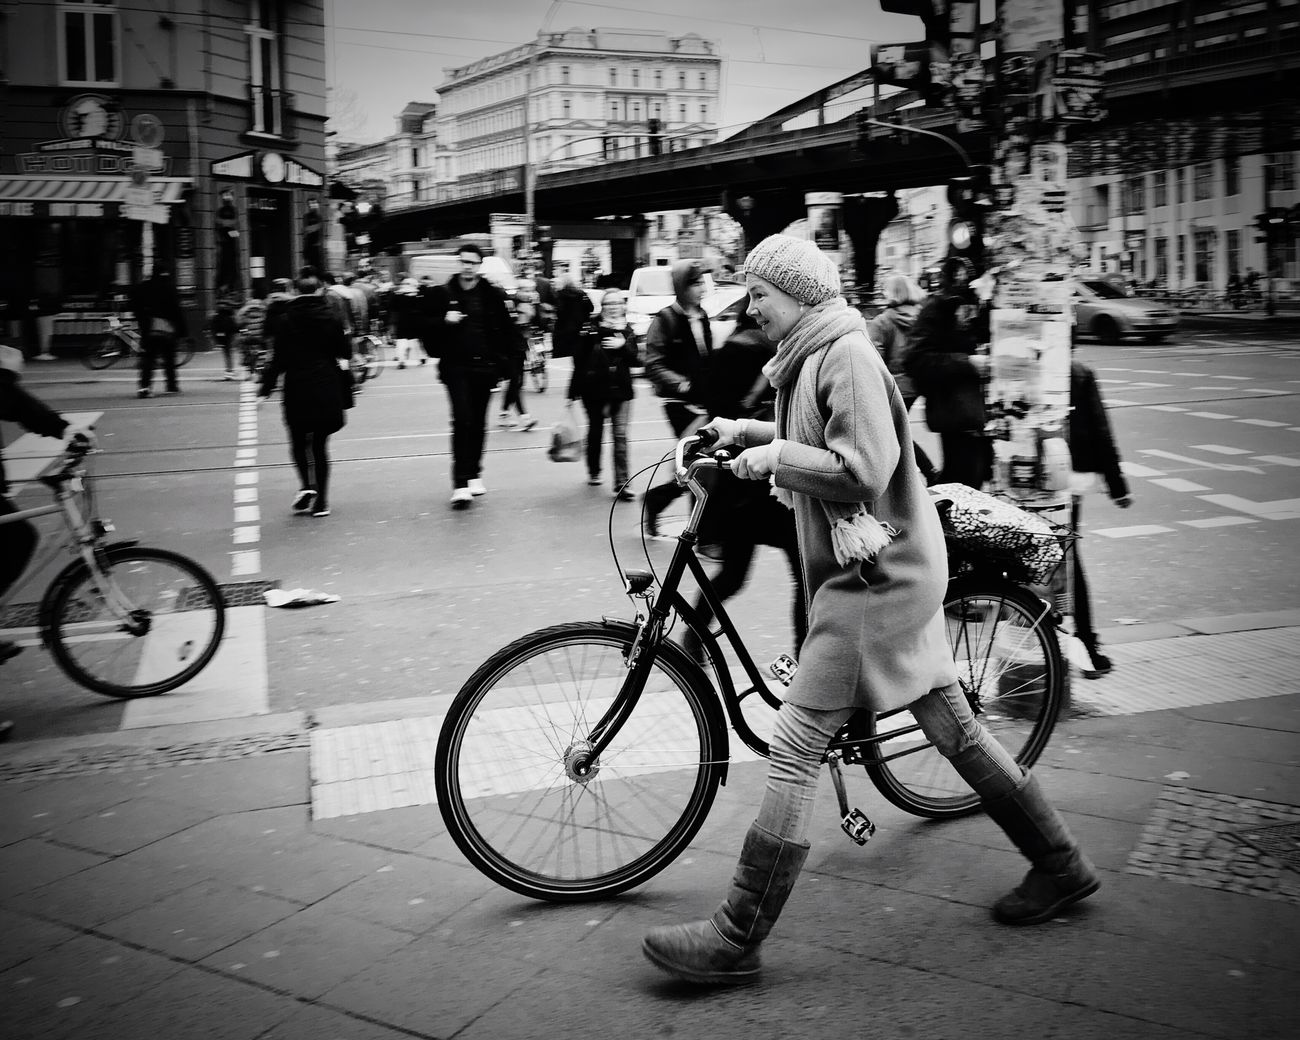 in a hurry Streetphotography Streetphoto_bw Street Blackandwhite Black & White